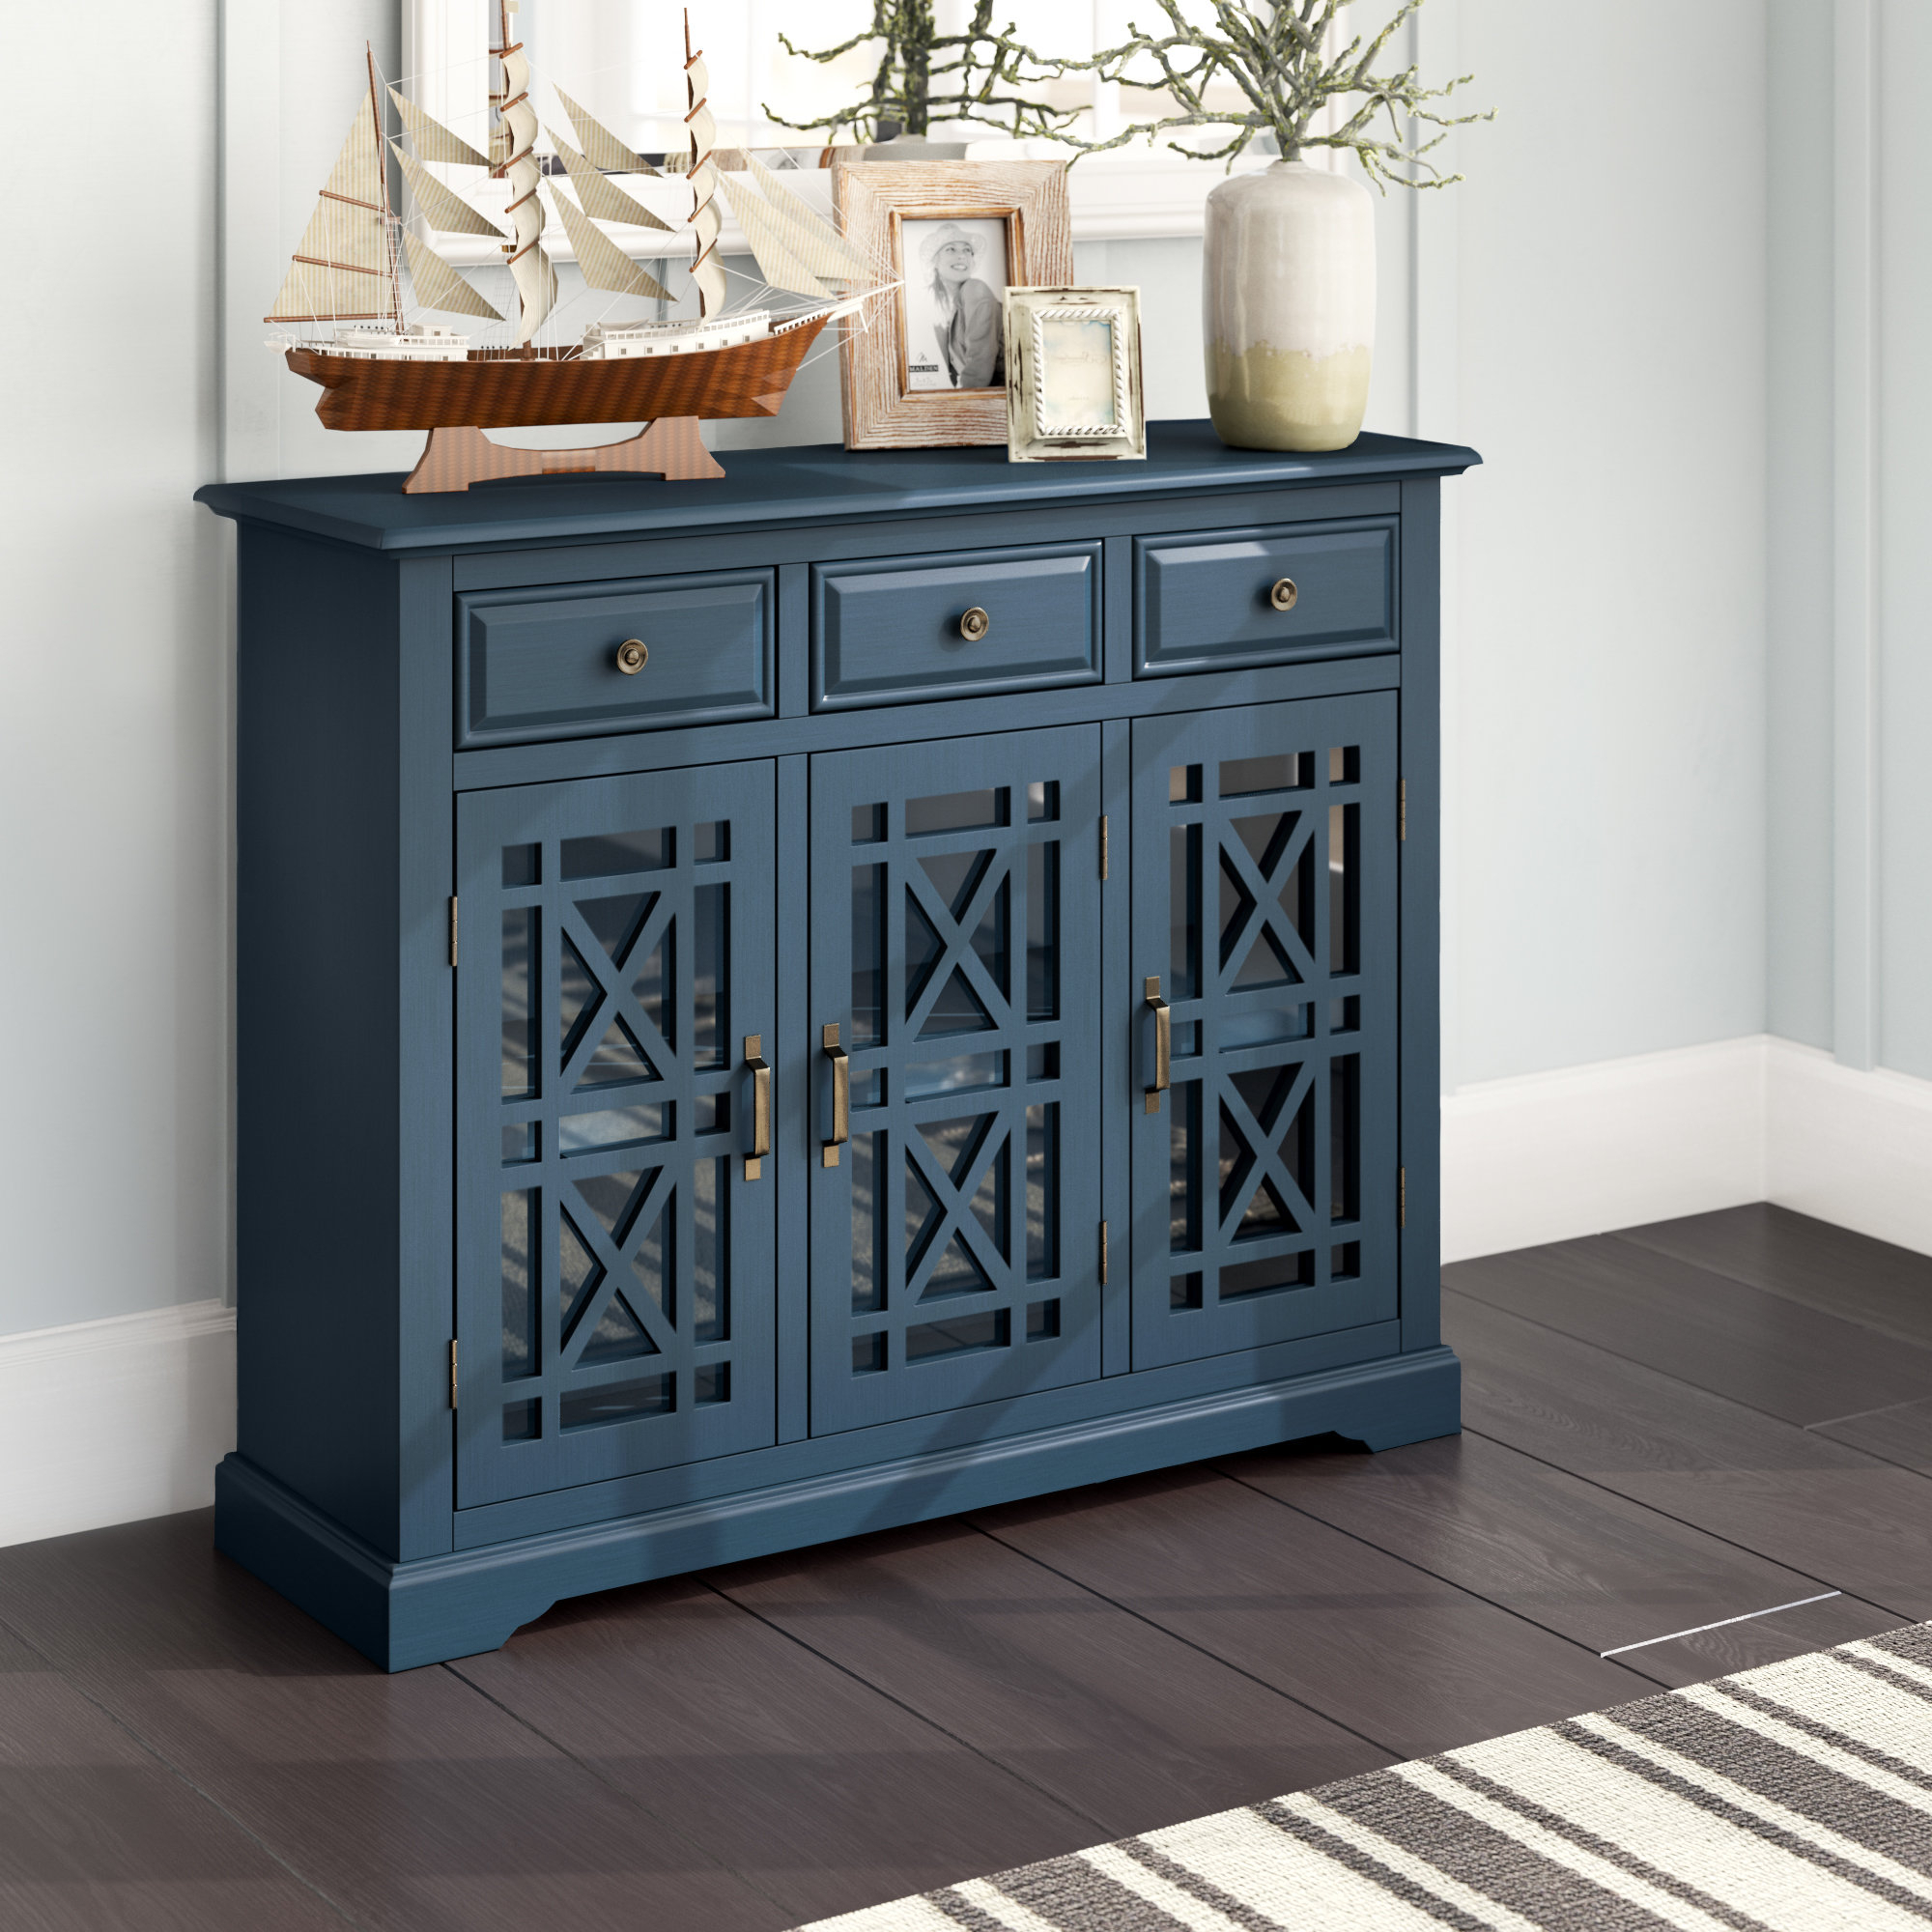 Sideboards & Buffet Tables You'll Love In 2019 | Wayfair Throughout Emmaline Sideboards (View 11 of 20)